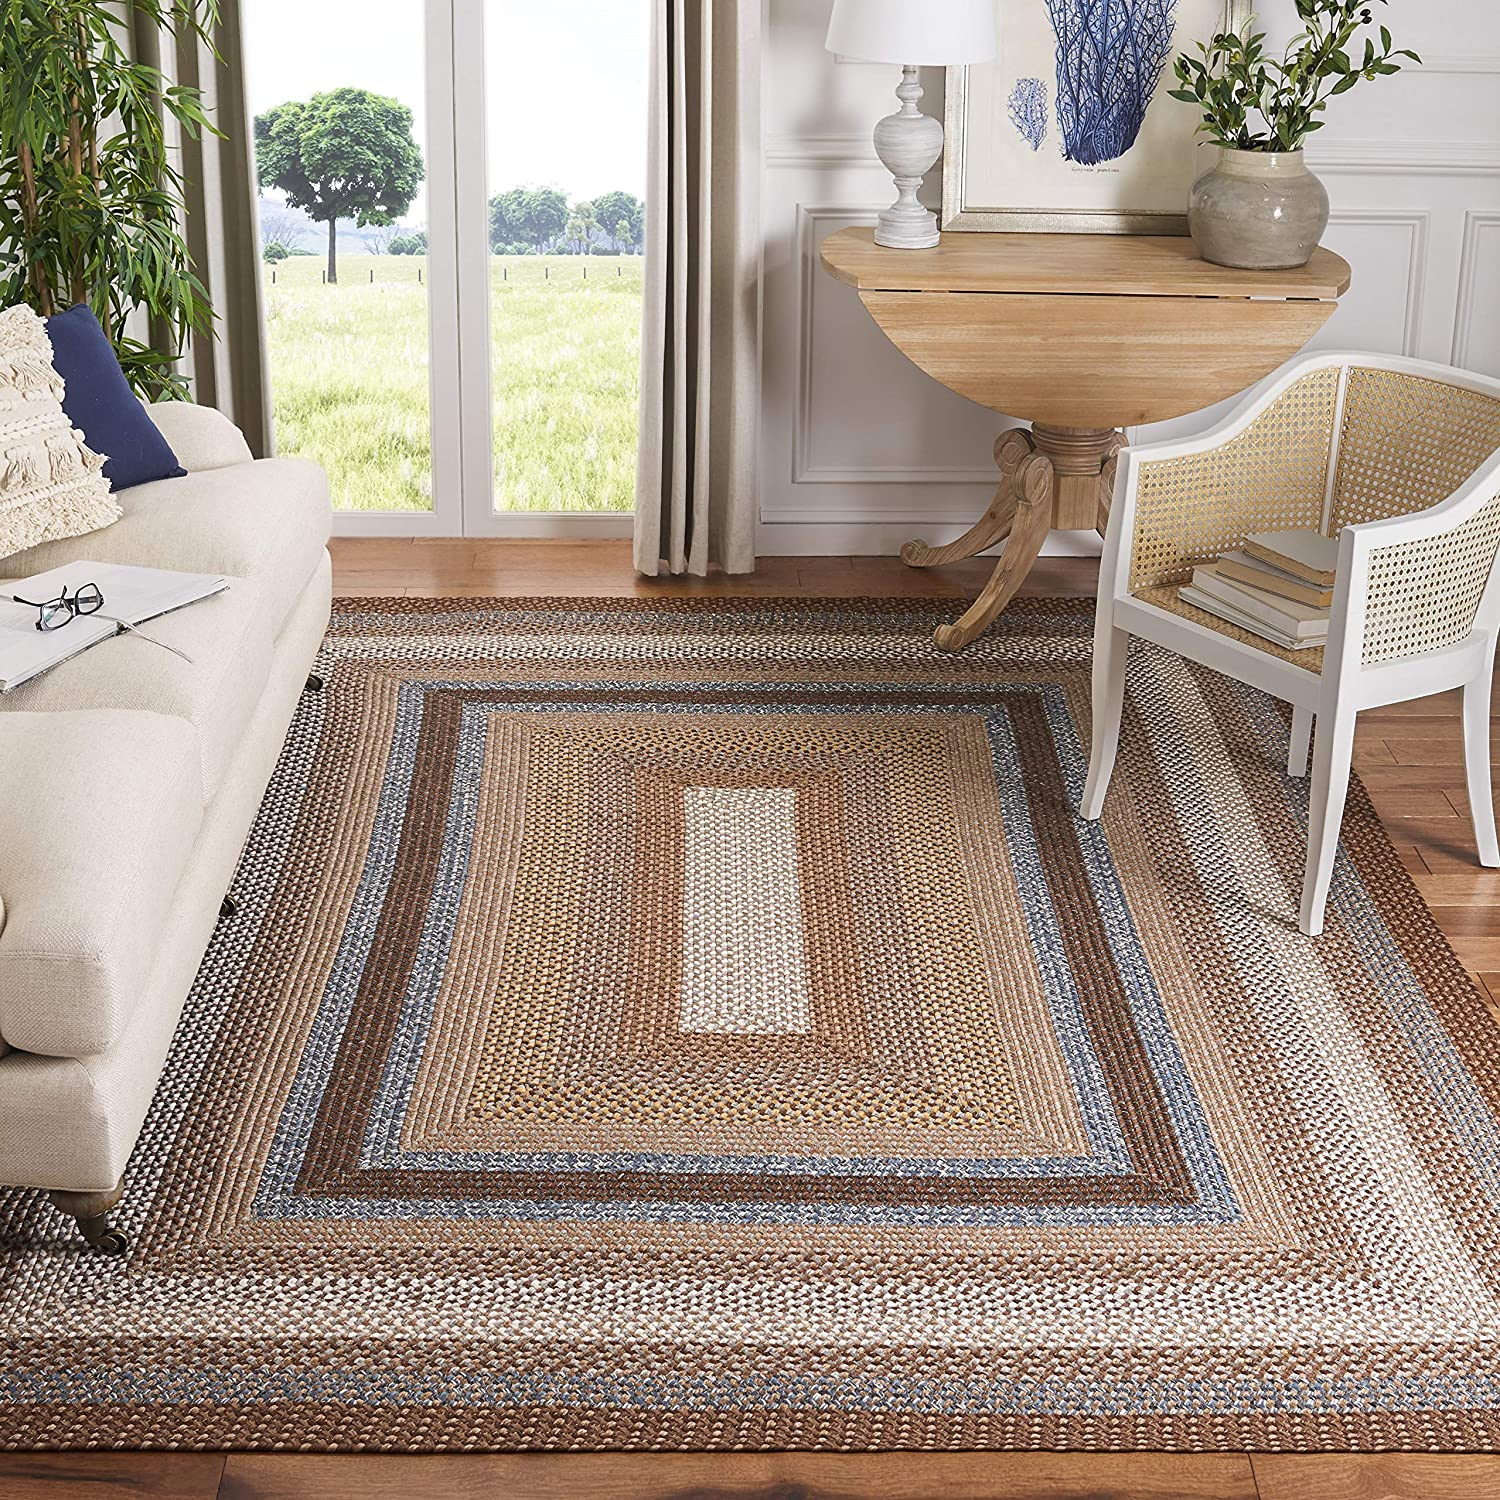 Safavieh Braided collection BRD313A Hand-woven Reversible Area Rug, 5' x 8', Brown/Multi